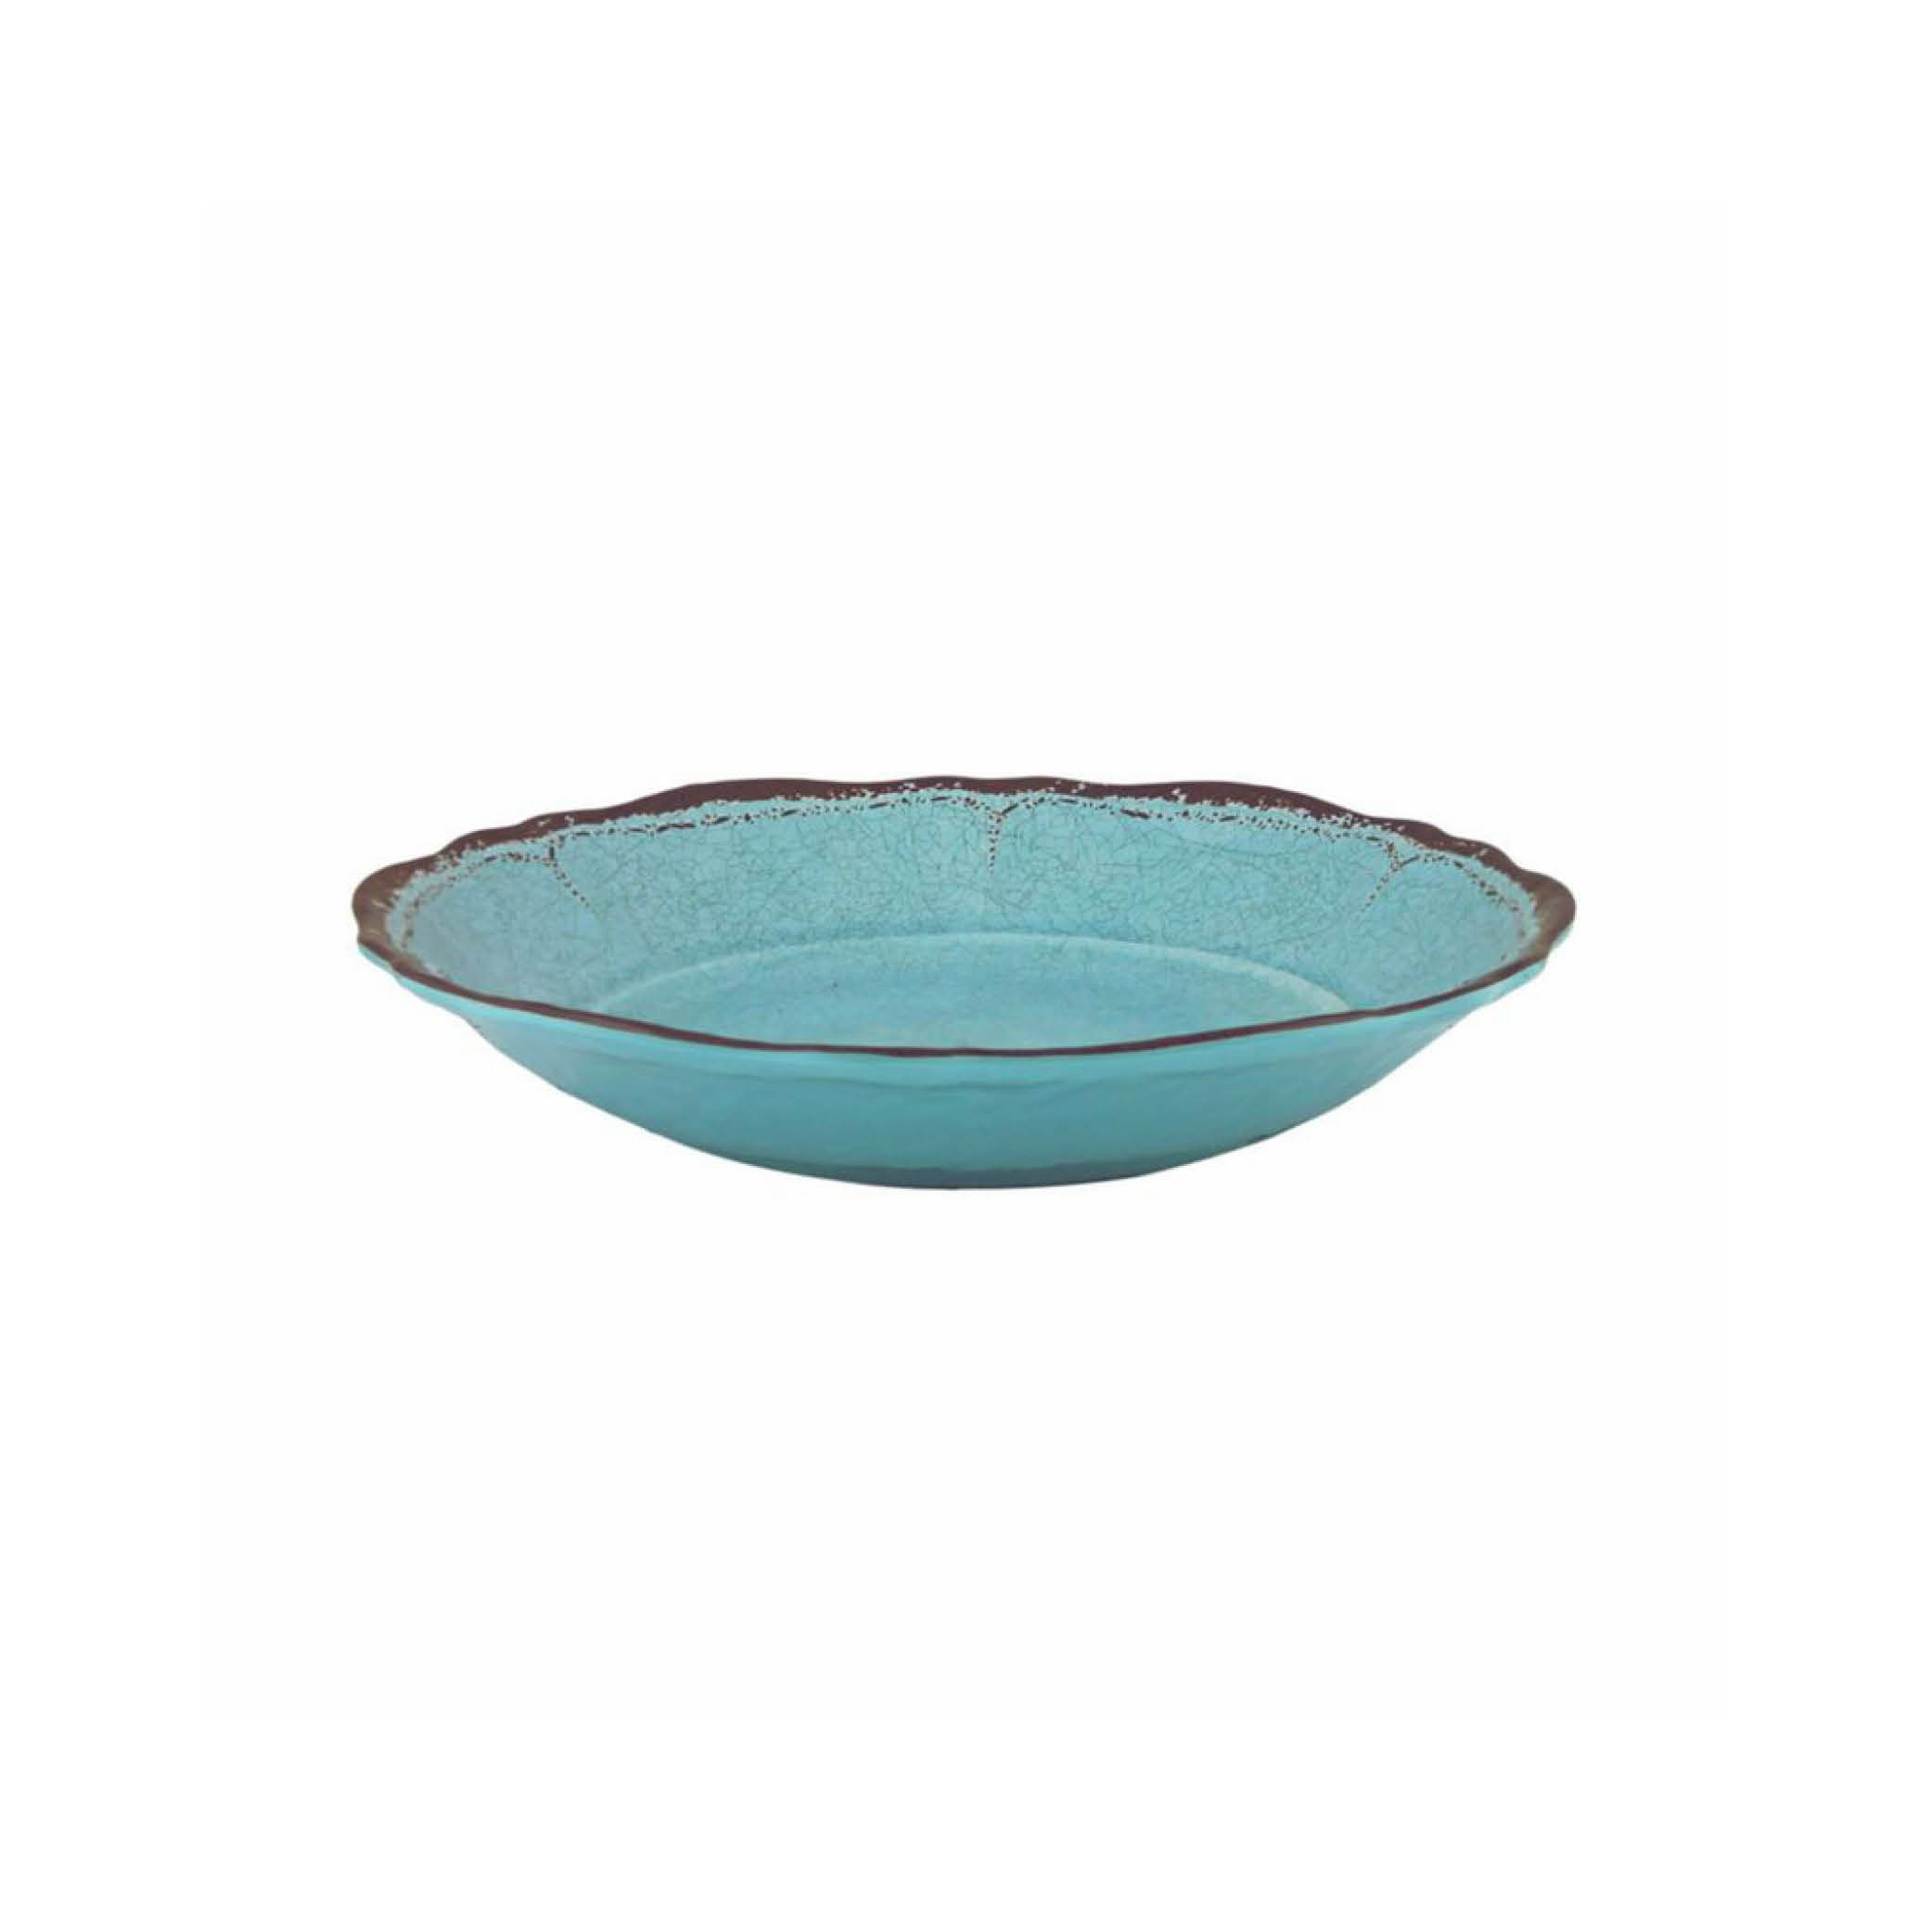 Antiqua Turquoise Pasta Bowl (small) $21.95   Wants 8 Has 8 Needs 0